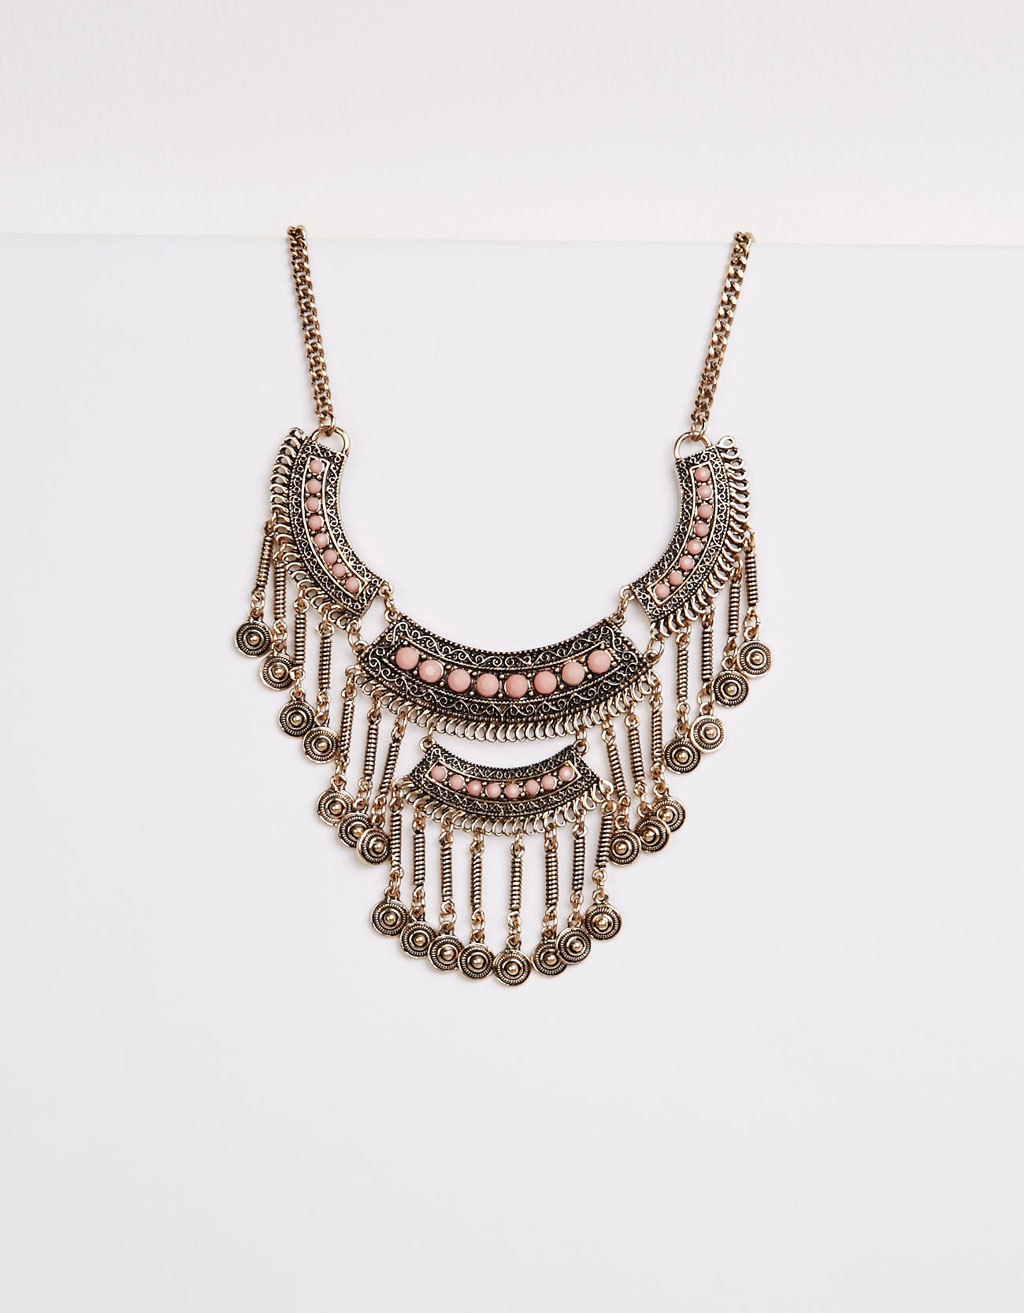 Necklace with nude enamel detail